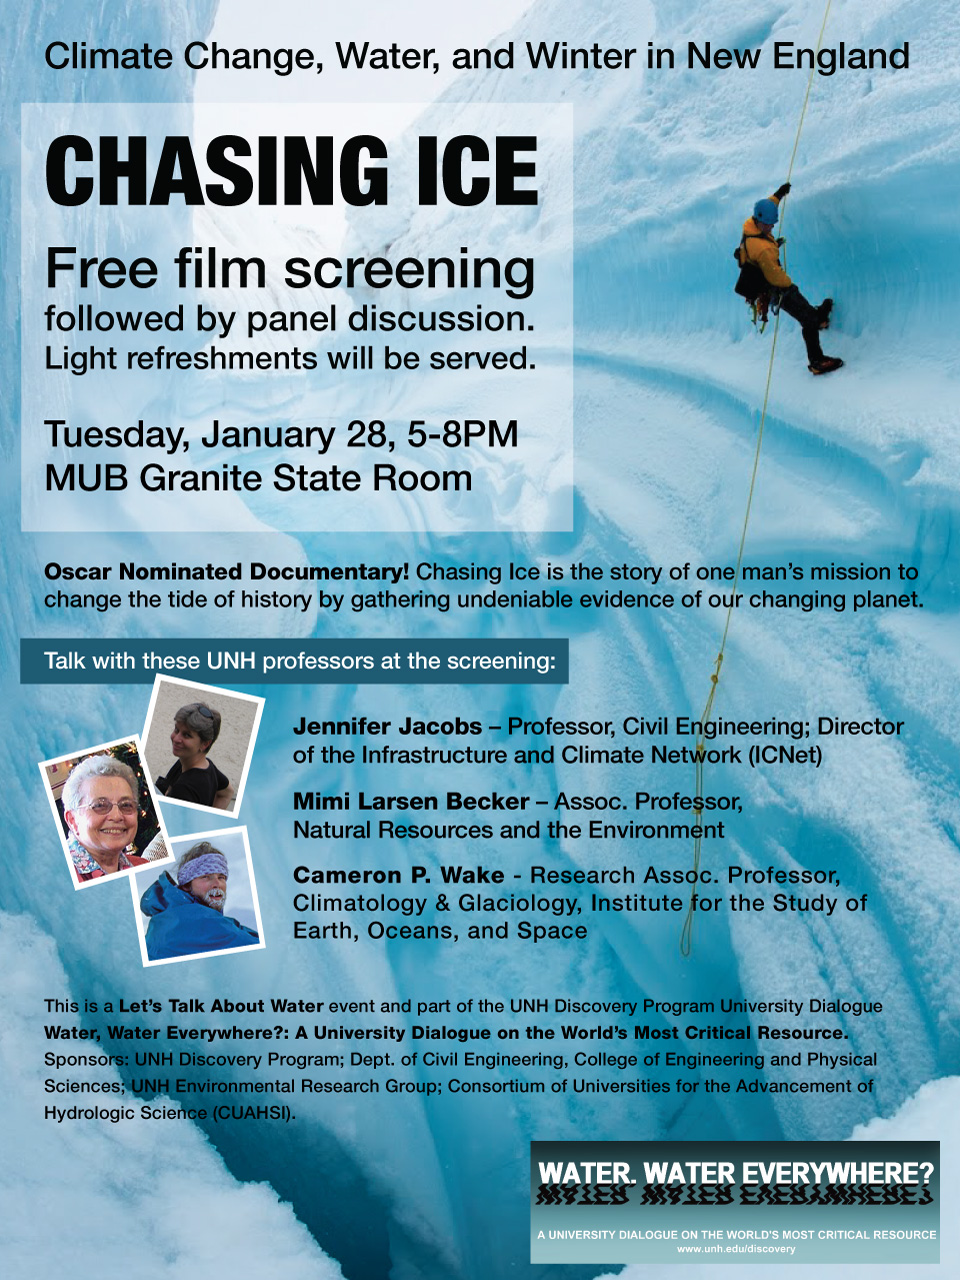 UNH Event - January 28, 2014 - Chasing Ice Poster